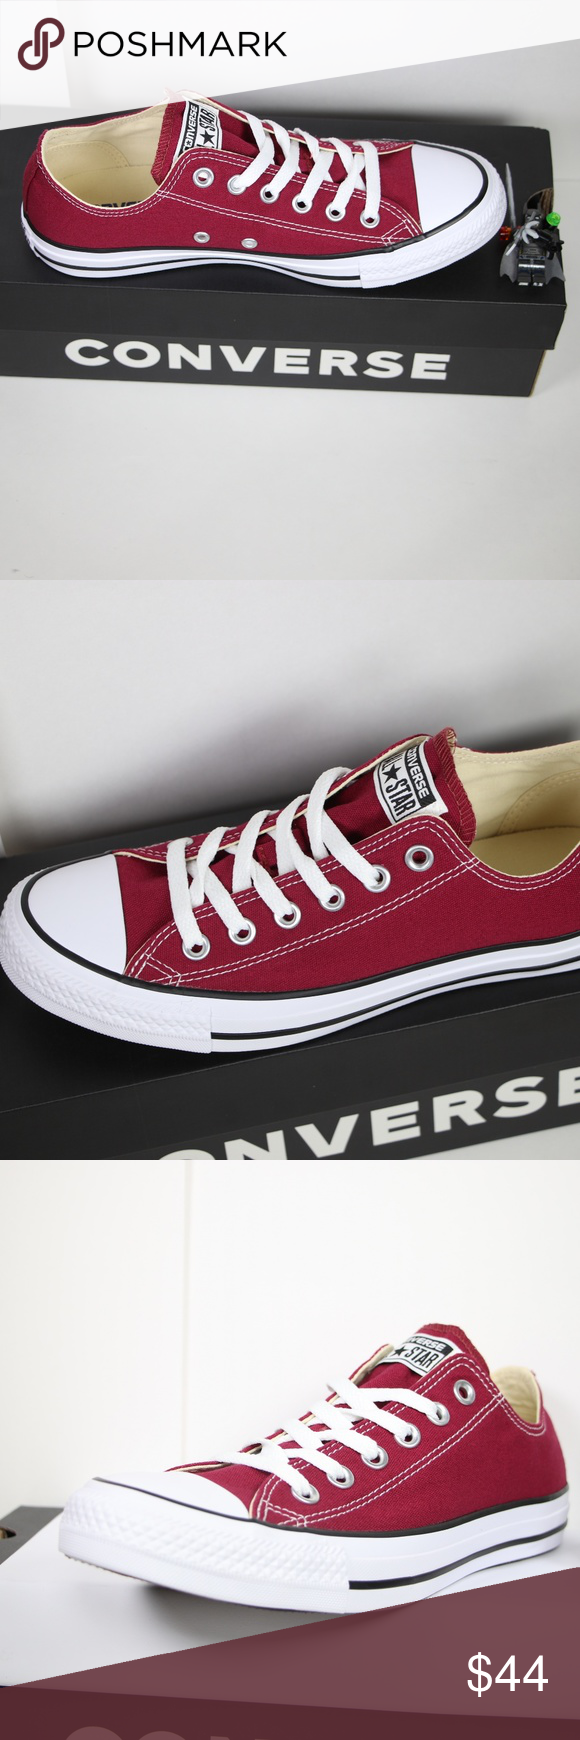 d7f1d2290e7a Maroon Classic Converse All Star Low Tops BRAND NEW in ORIGINAL BOX  100%  AUTHENTIC. Price is firm. More sizes available (listed below) in LOW TOPS    HIGH ...